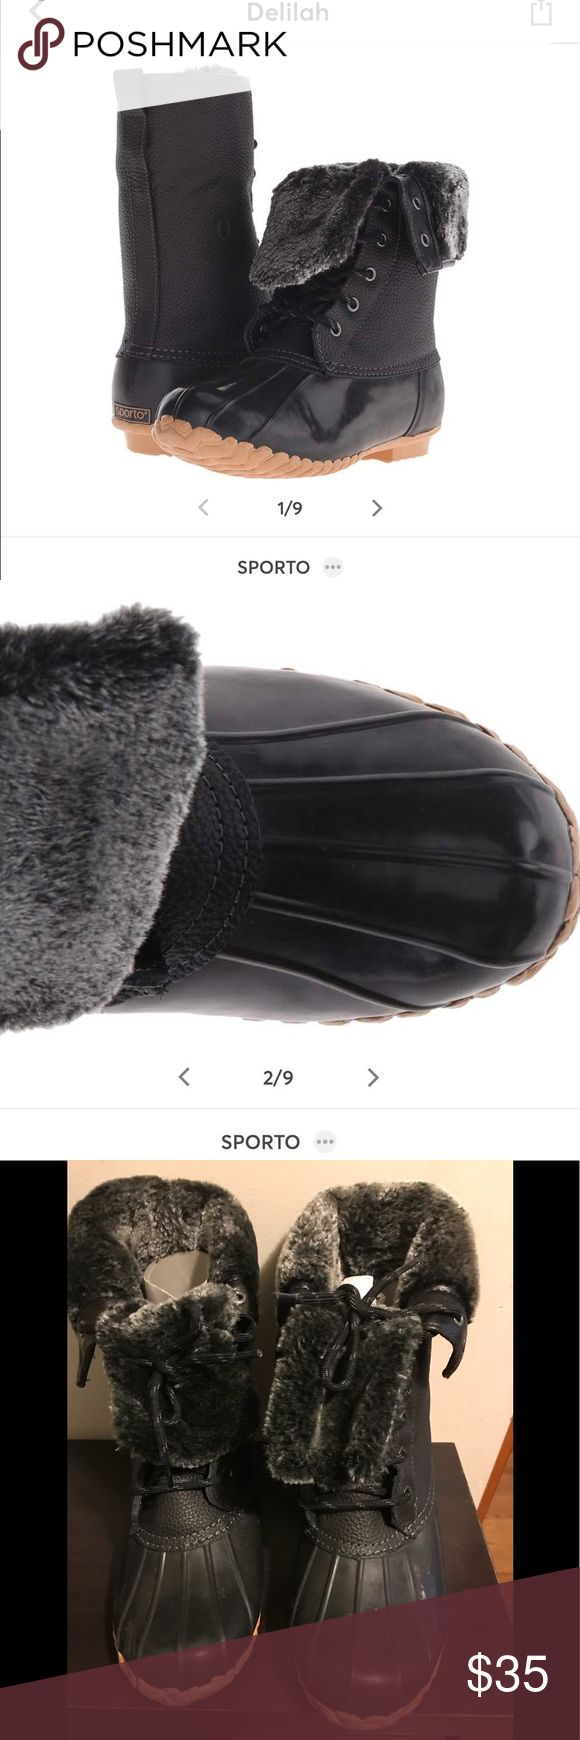 Sporto Boots Worn twice. Excellent condition and very comfy. Just too big for me because I took a chance on a larger size than I normally wear. Size 7 true to size, very soft plush fur inside. Sporto Shoes Winter & Rain Boots